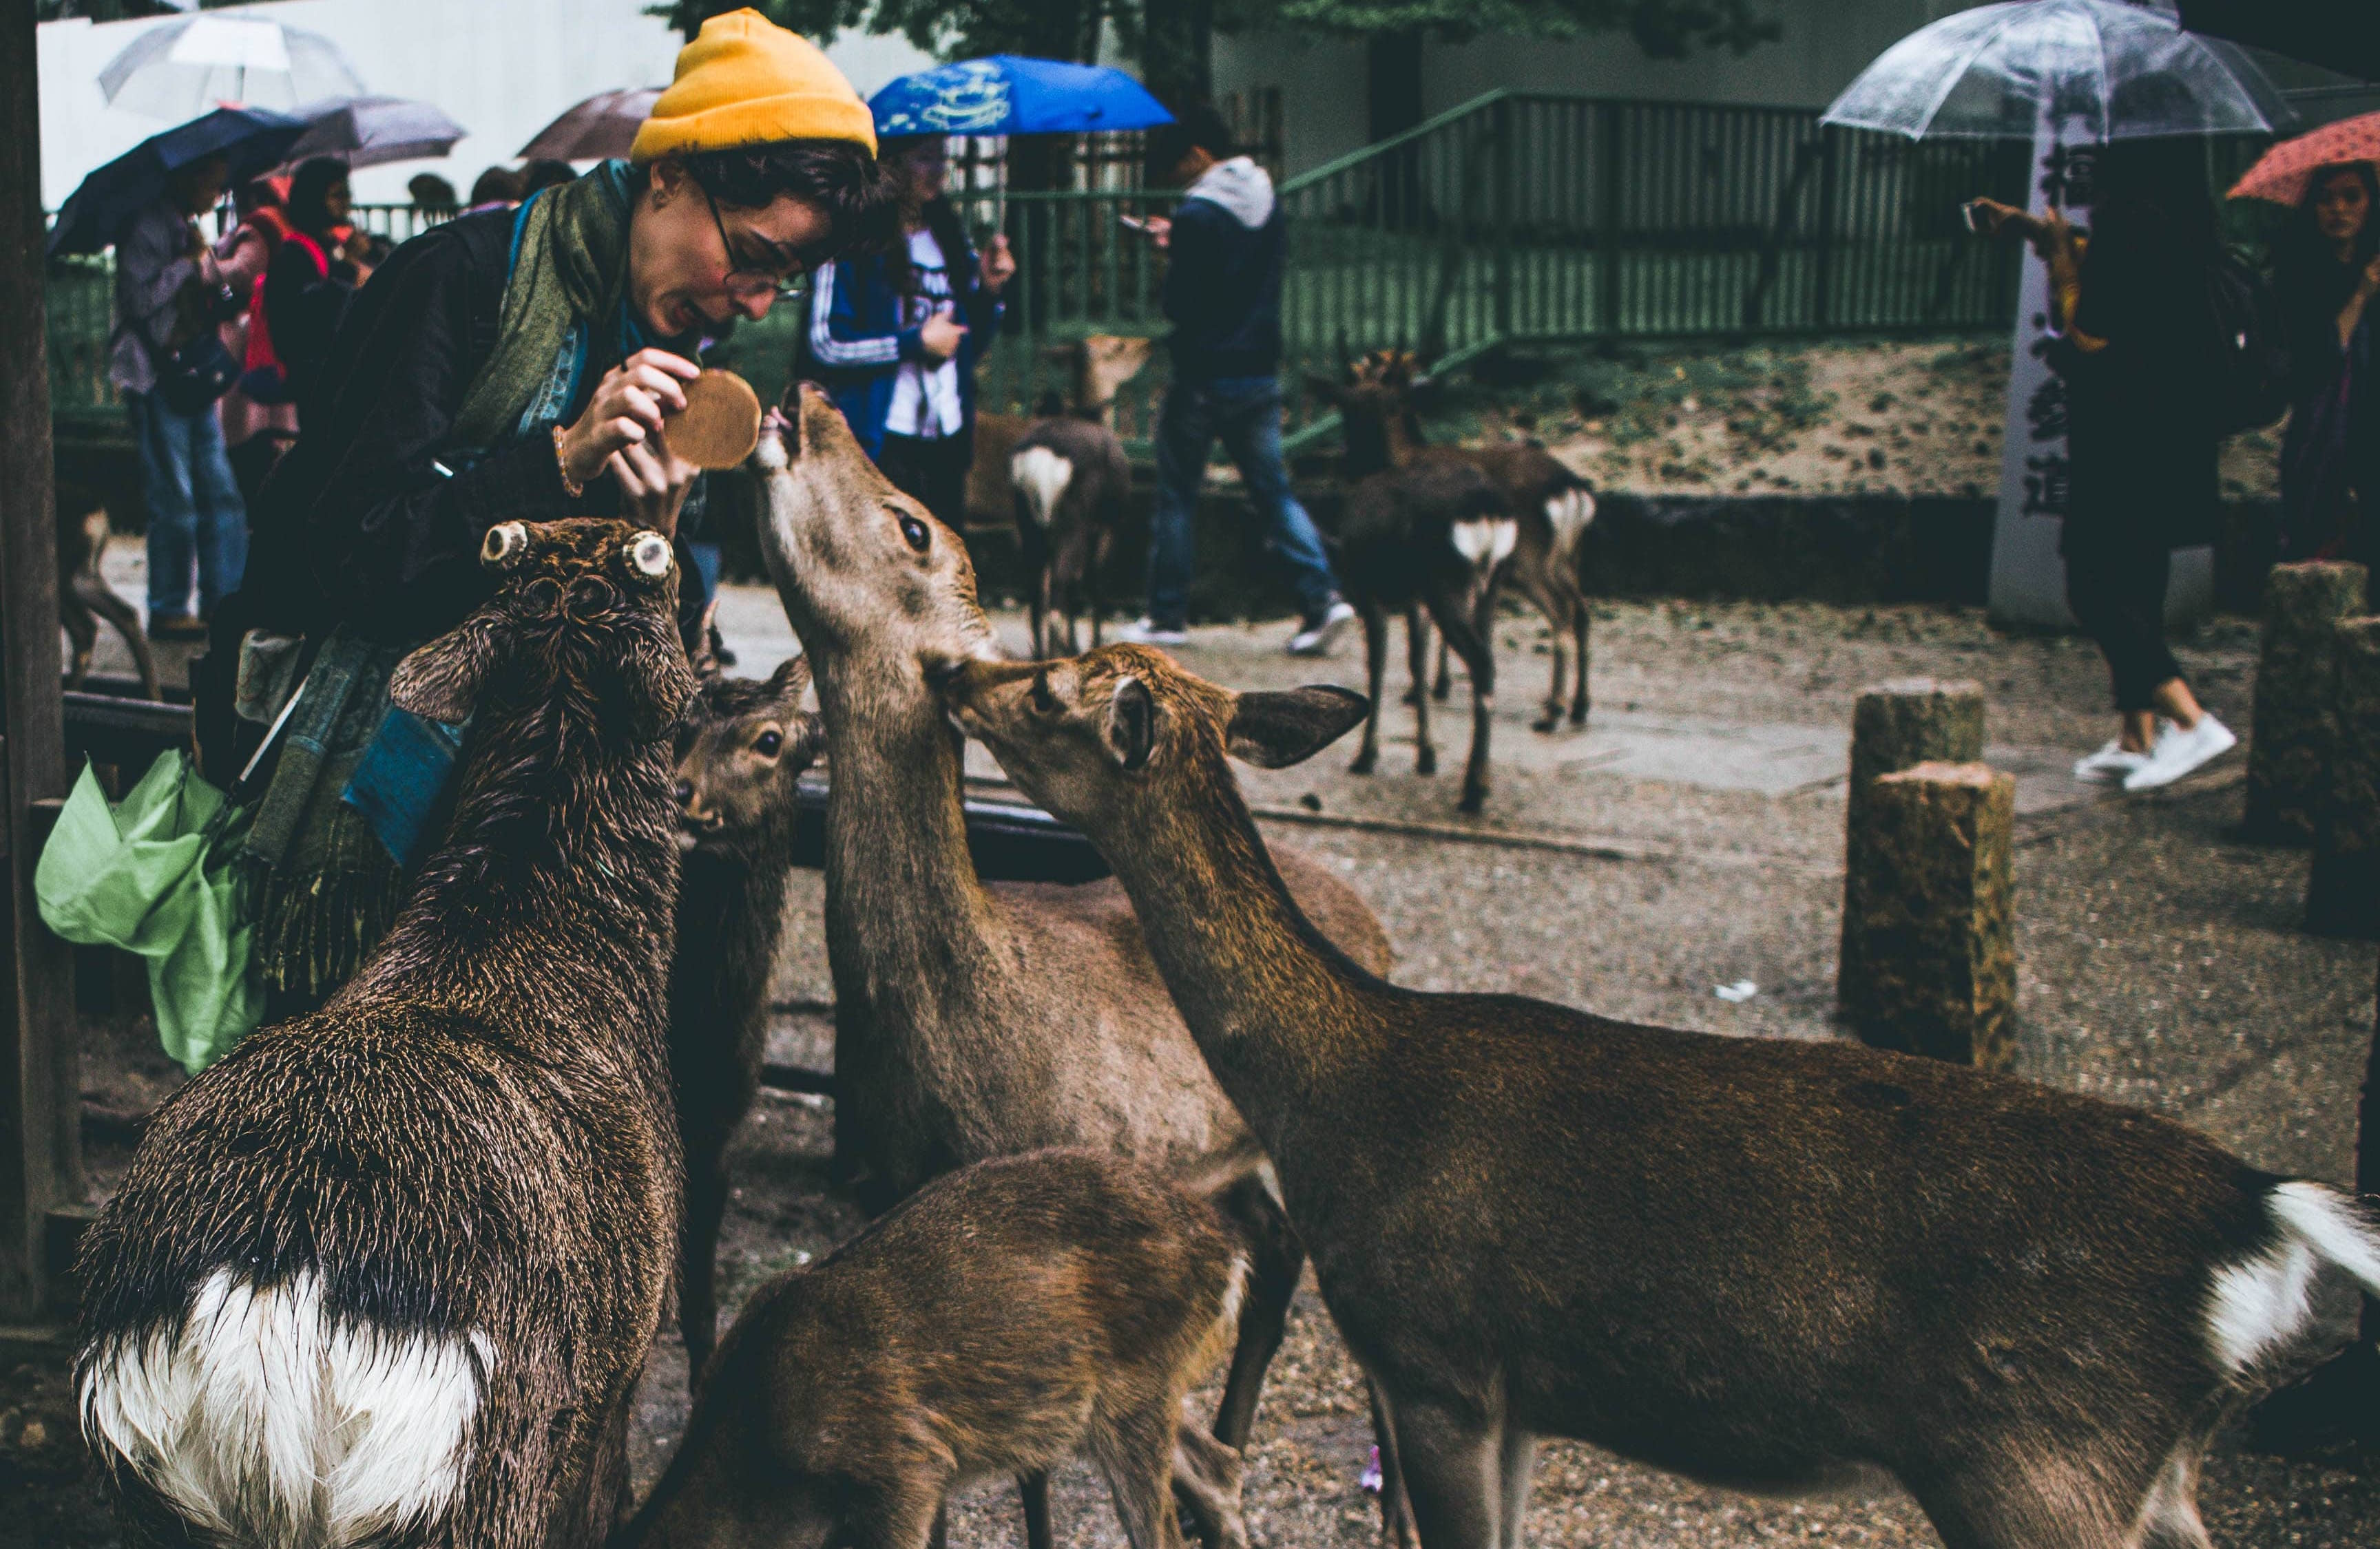 Nara is one of the best places to visit in Japan